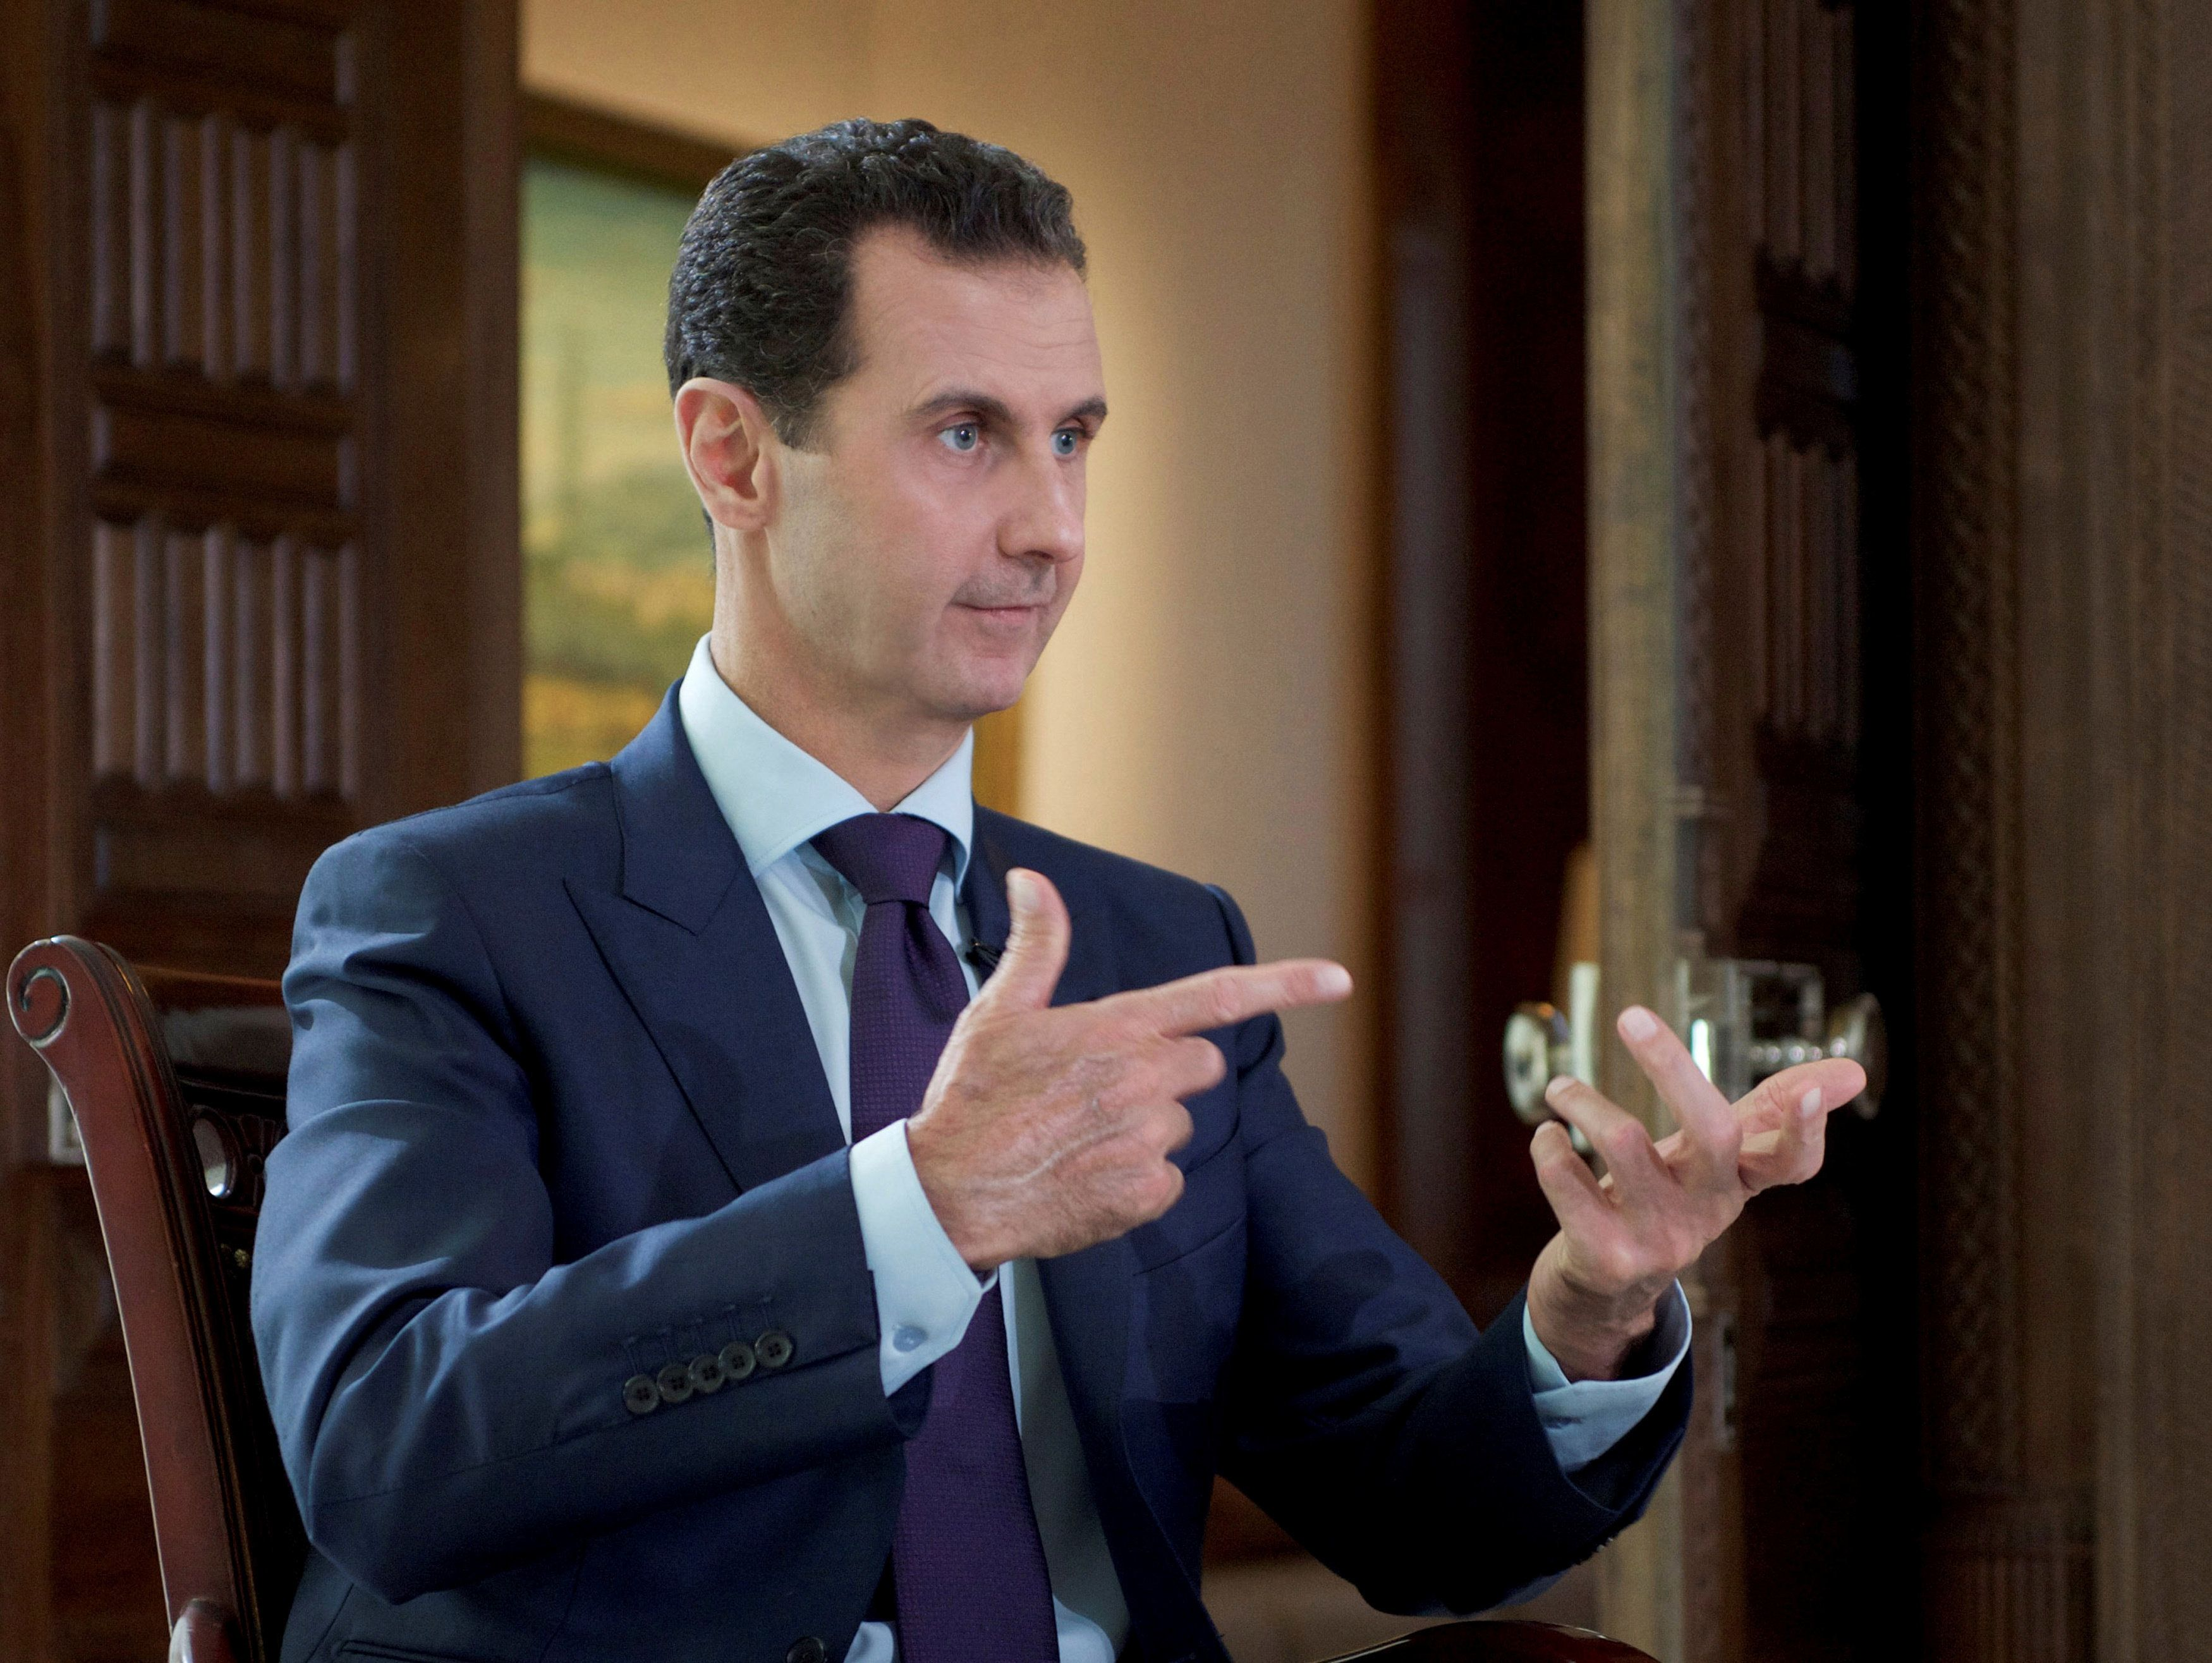 Syria's President Bashar al-Assad speaks during an interview with Denmark's TV 2, in this handout picture provided by SANA on October 6, 2016. SANA/Handout via REUTERS ATTENTION EDITORS - THIS PICTURE WAS PROVIDED BY A THIRD PARTY. REUTERS IS UNABLE TO INDEPENDENTLY VERIFY THE AUTHENTICITY, CONTENT, LOCATION OR DATE OF THIS IMAGE. FOR EDITORIAL USE ONLY.